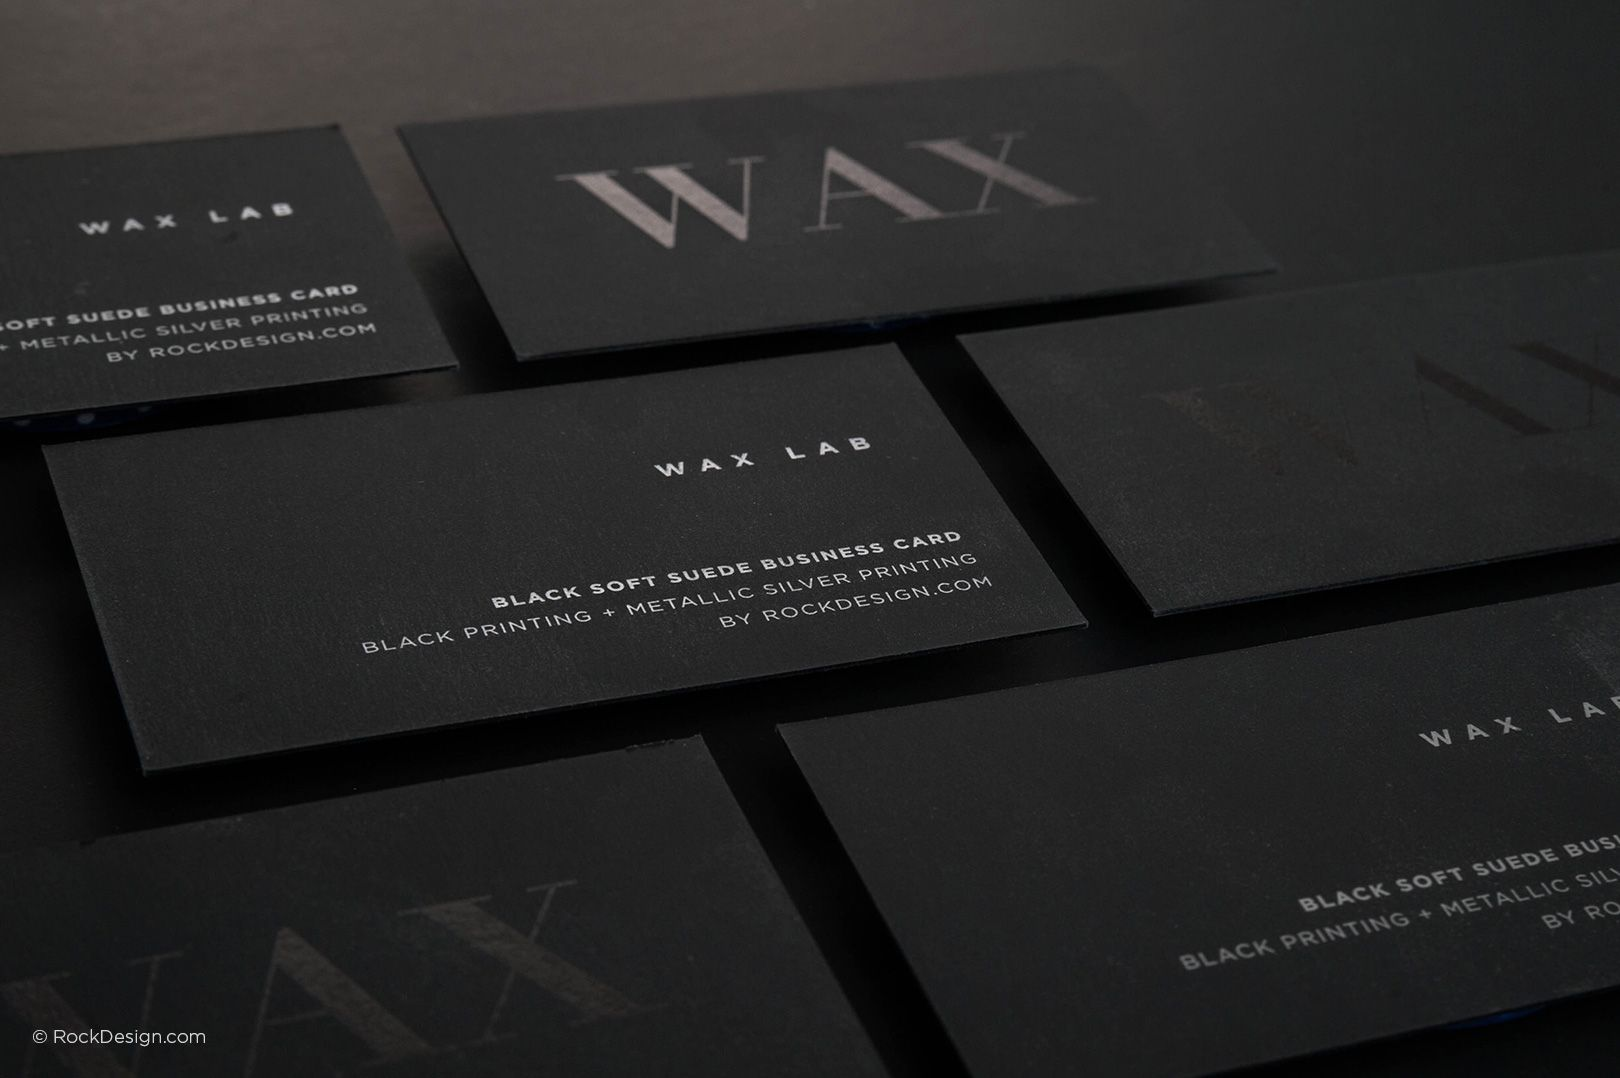 Modern minimalistic black suede business card with metallic ink modern minimalistic black suede business card with metallic ink wax rockdesign luxury business card printing colourmoves